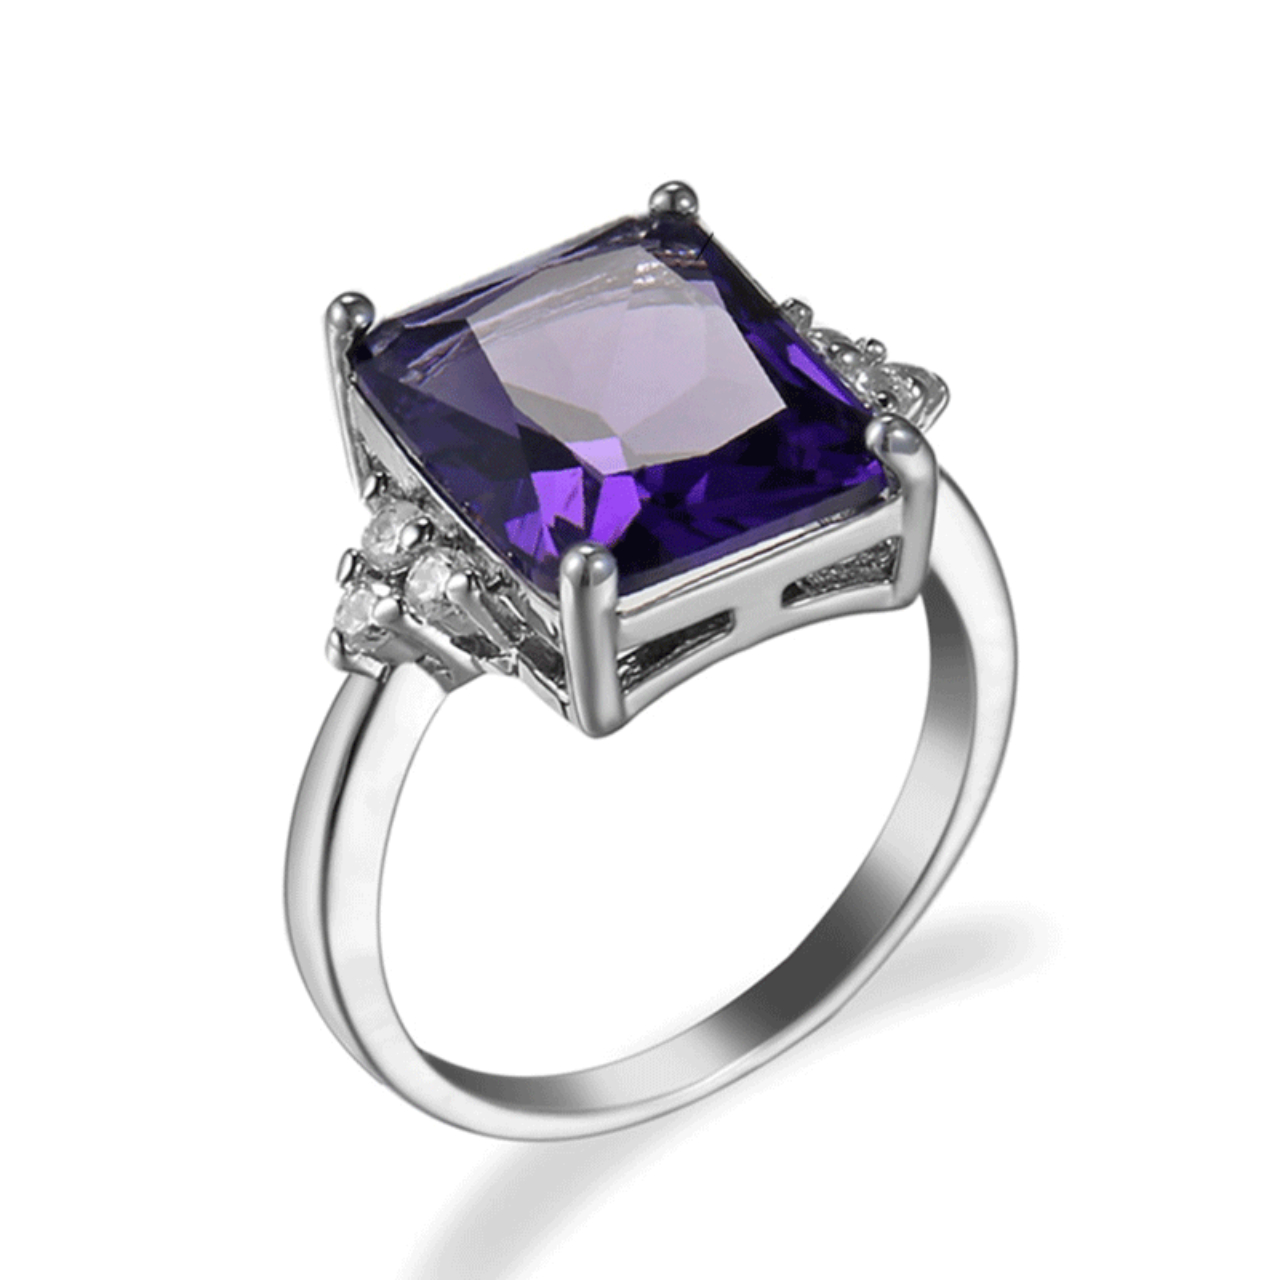 Product Image 1 - FREE SHIPPING - Exemplary Square